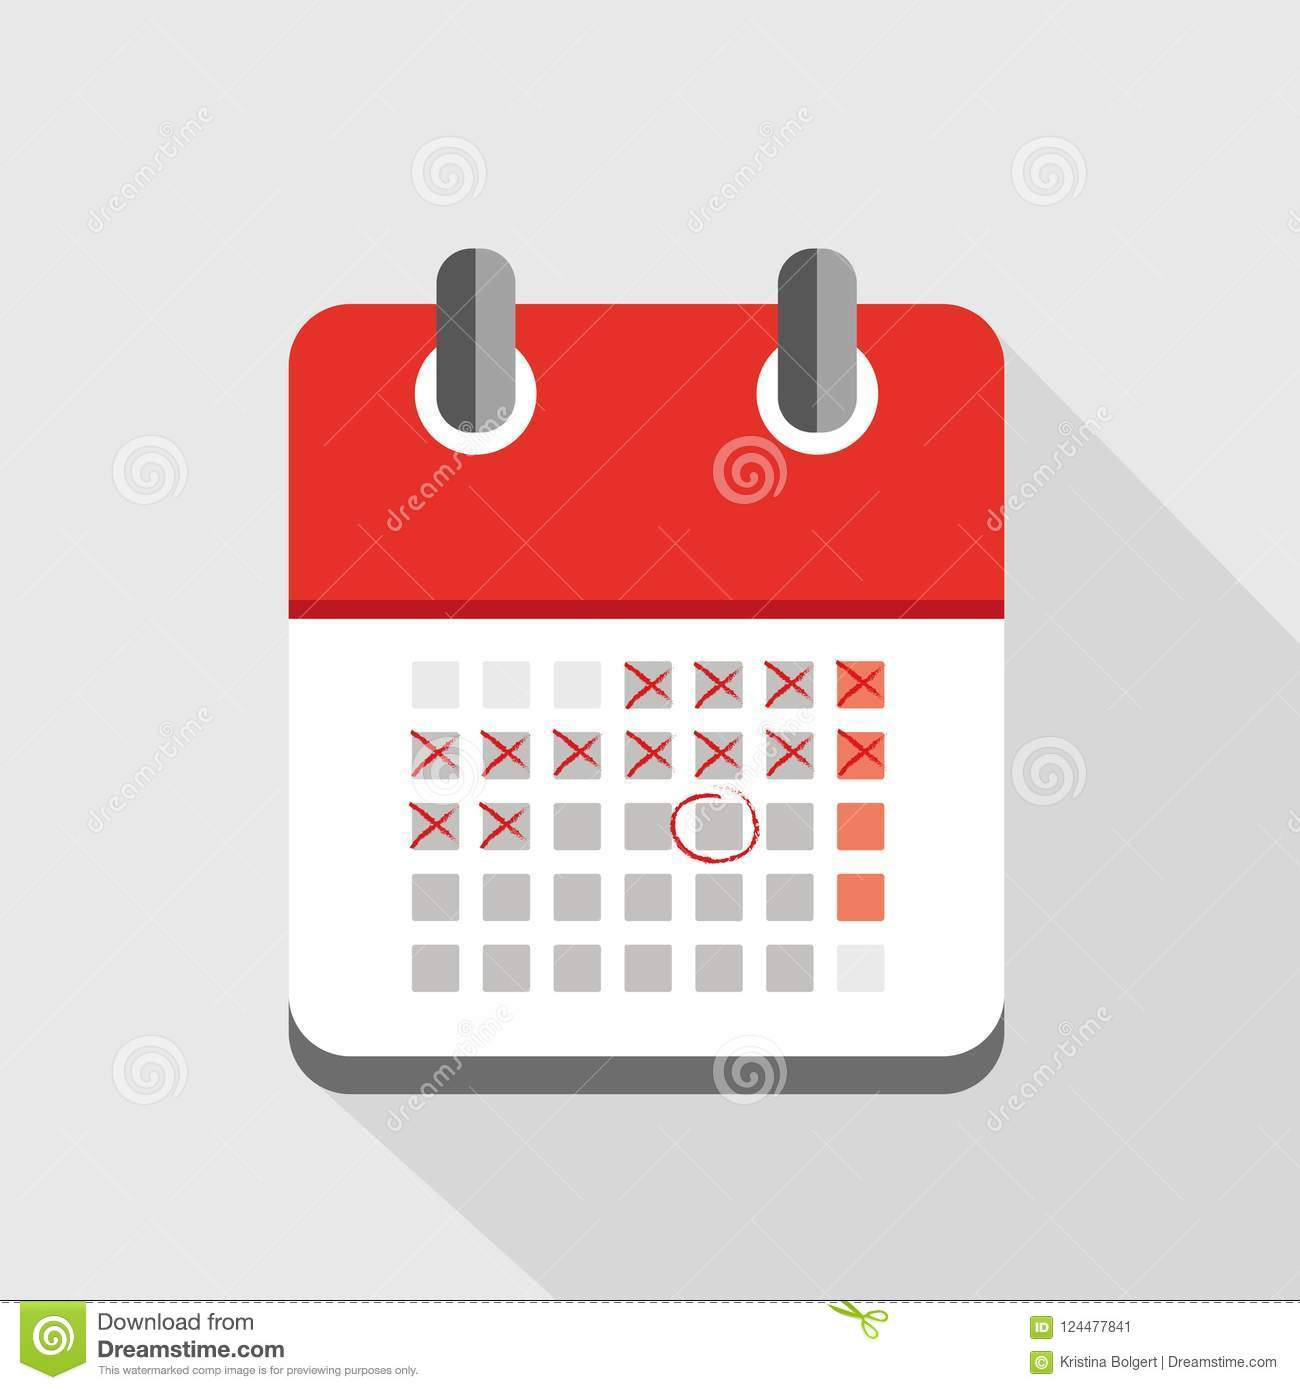 Counting Days In Red Calendar Icon Stock Vector inside Calendar Icon Red